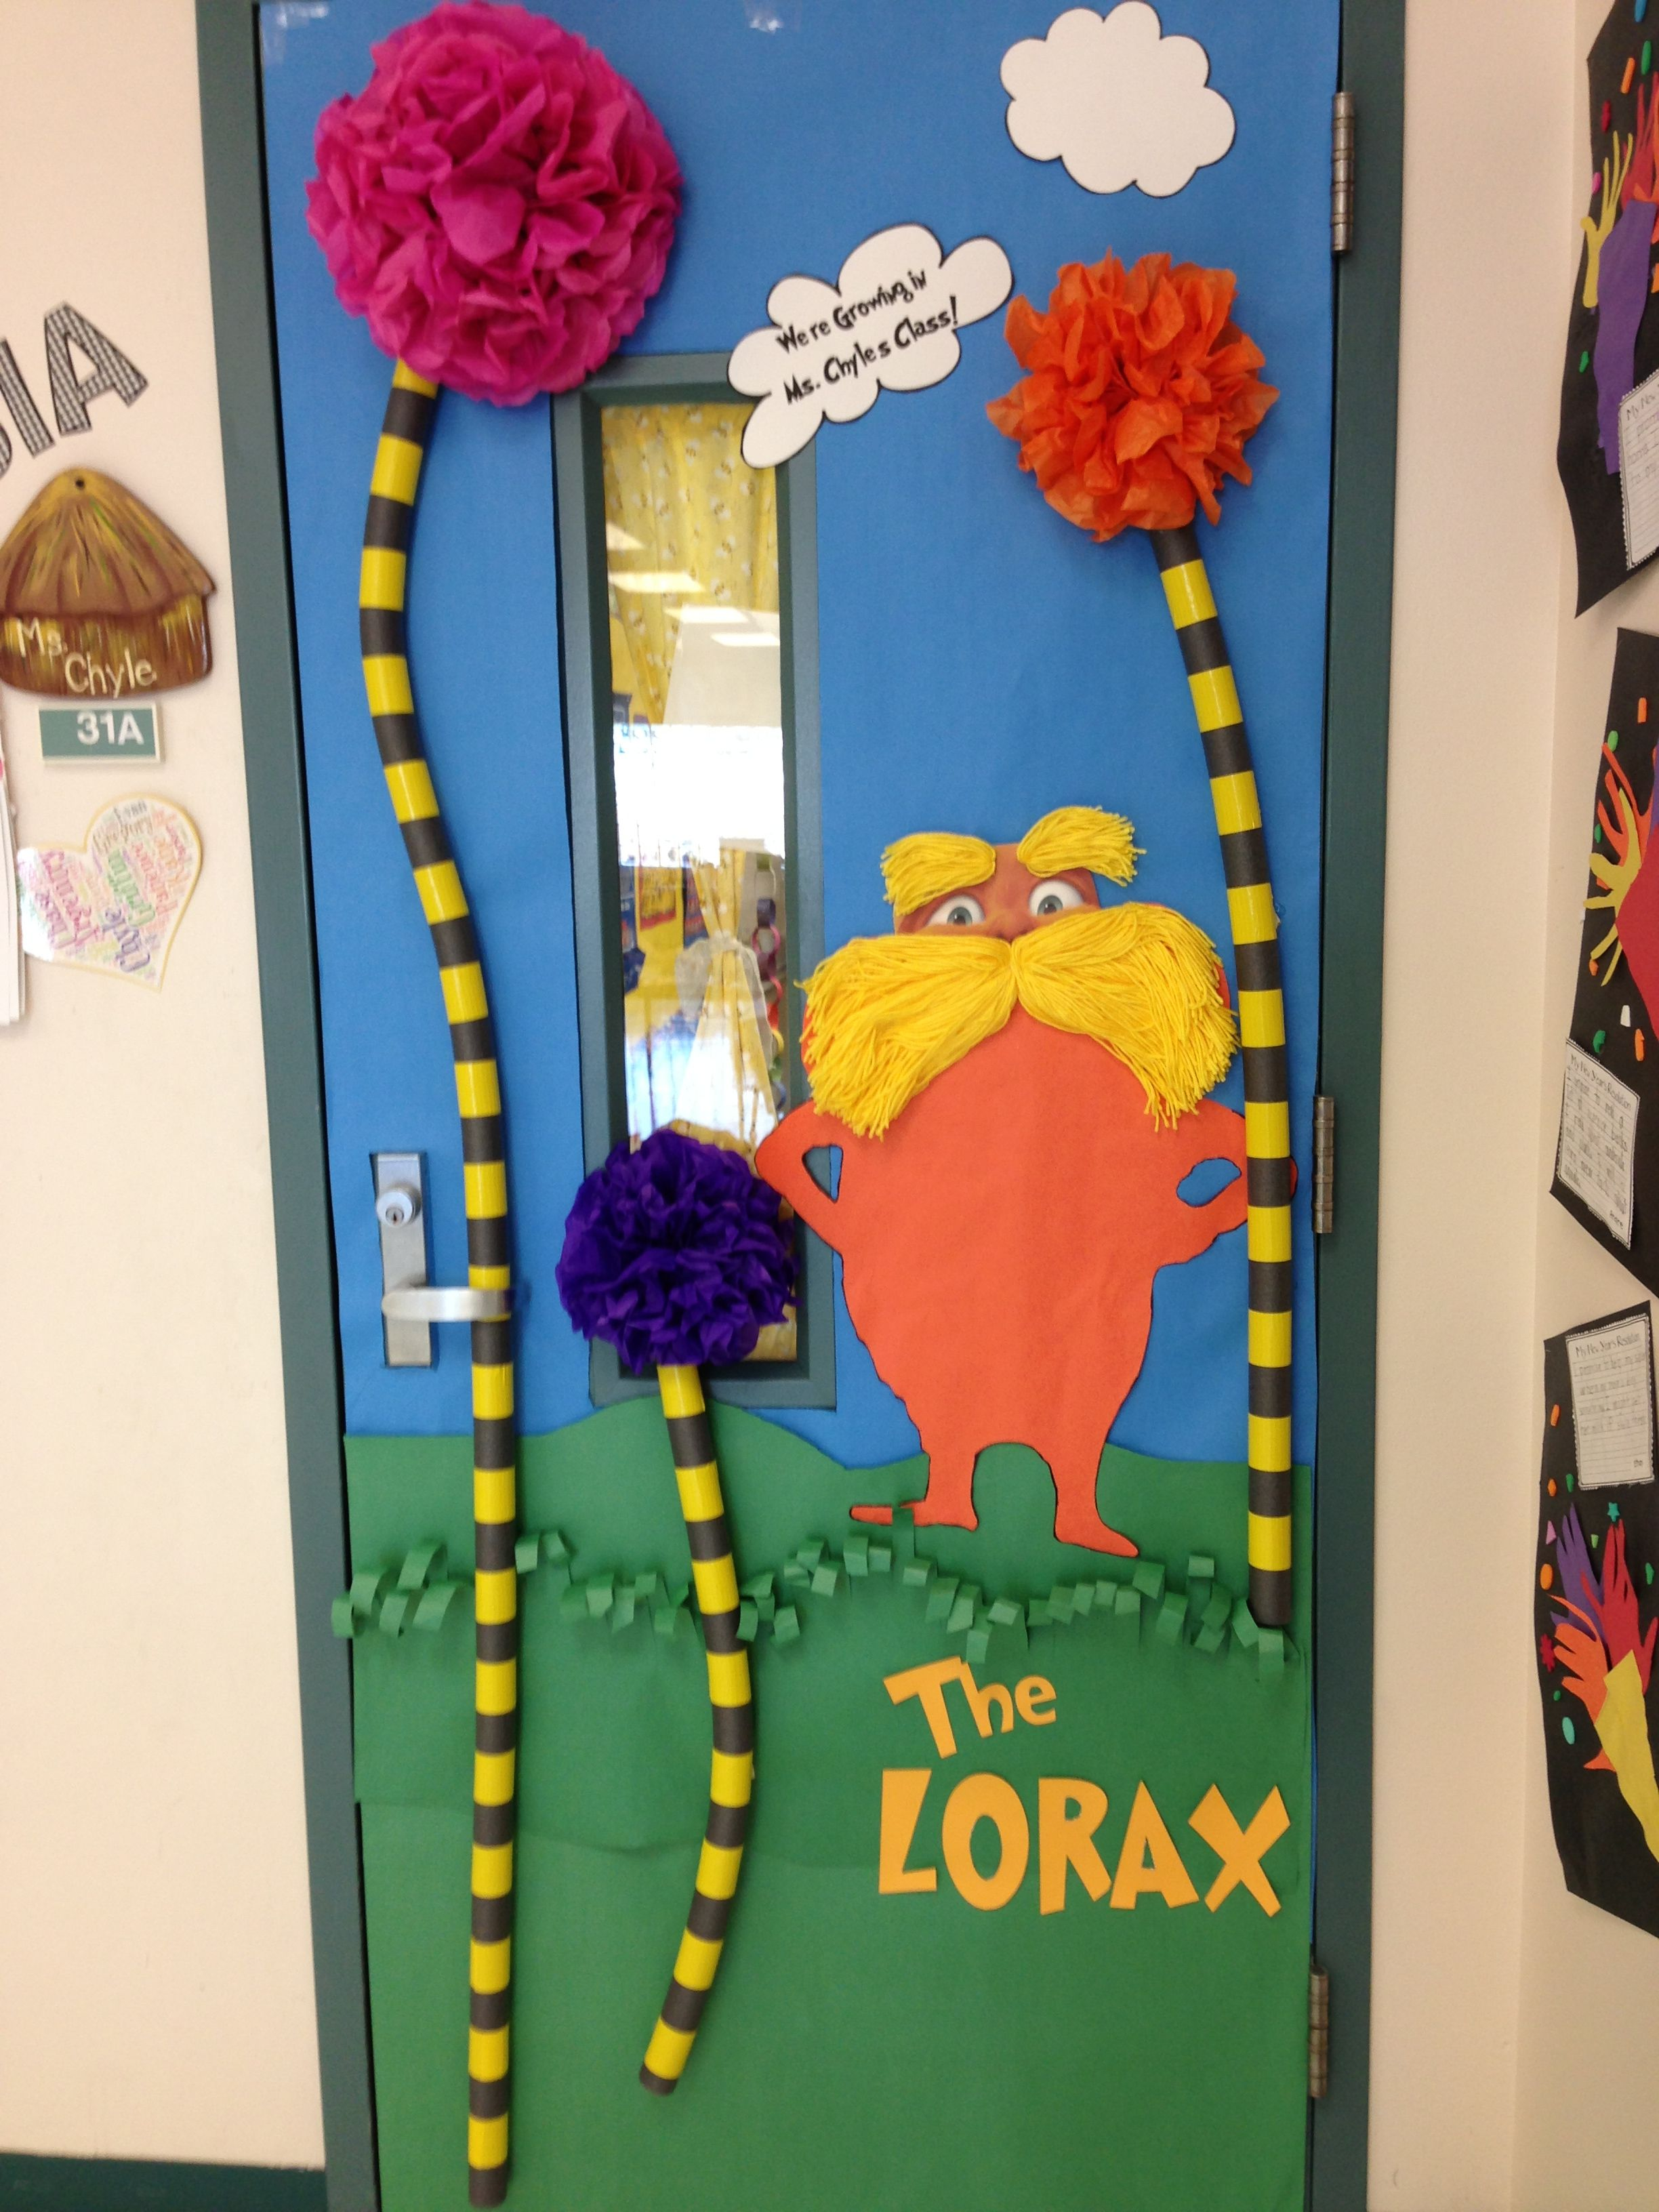 20 Lorax Door Decorations Pictures And Ideas On Meta Networks